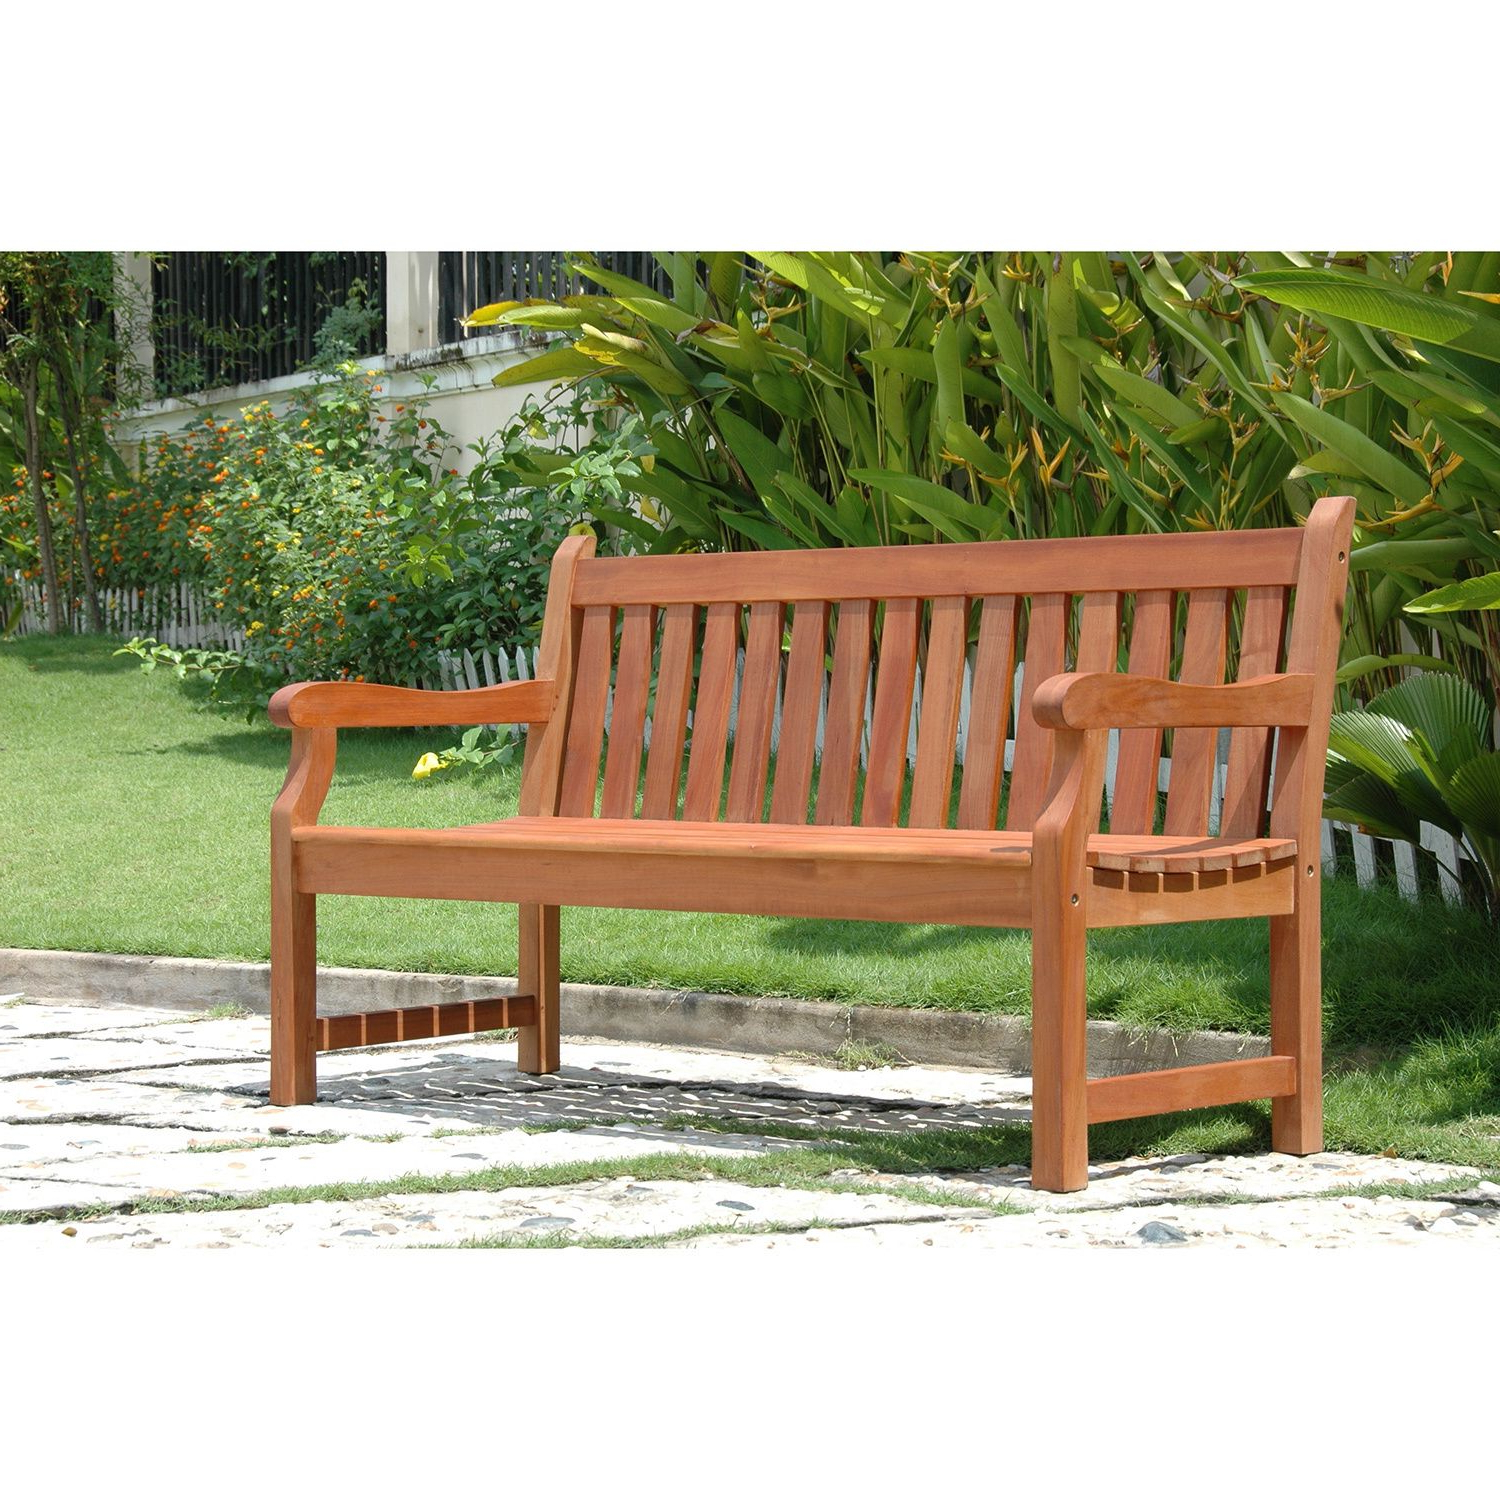 Wallie Teak Garden Benches Intended For Popular Overstock: Online Shopping – Bedding, Furniture (View 14 of 30)